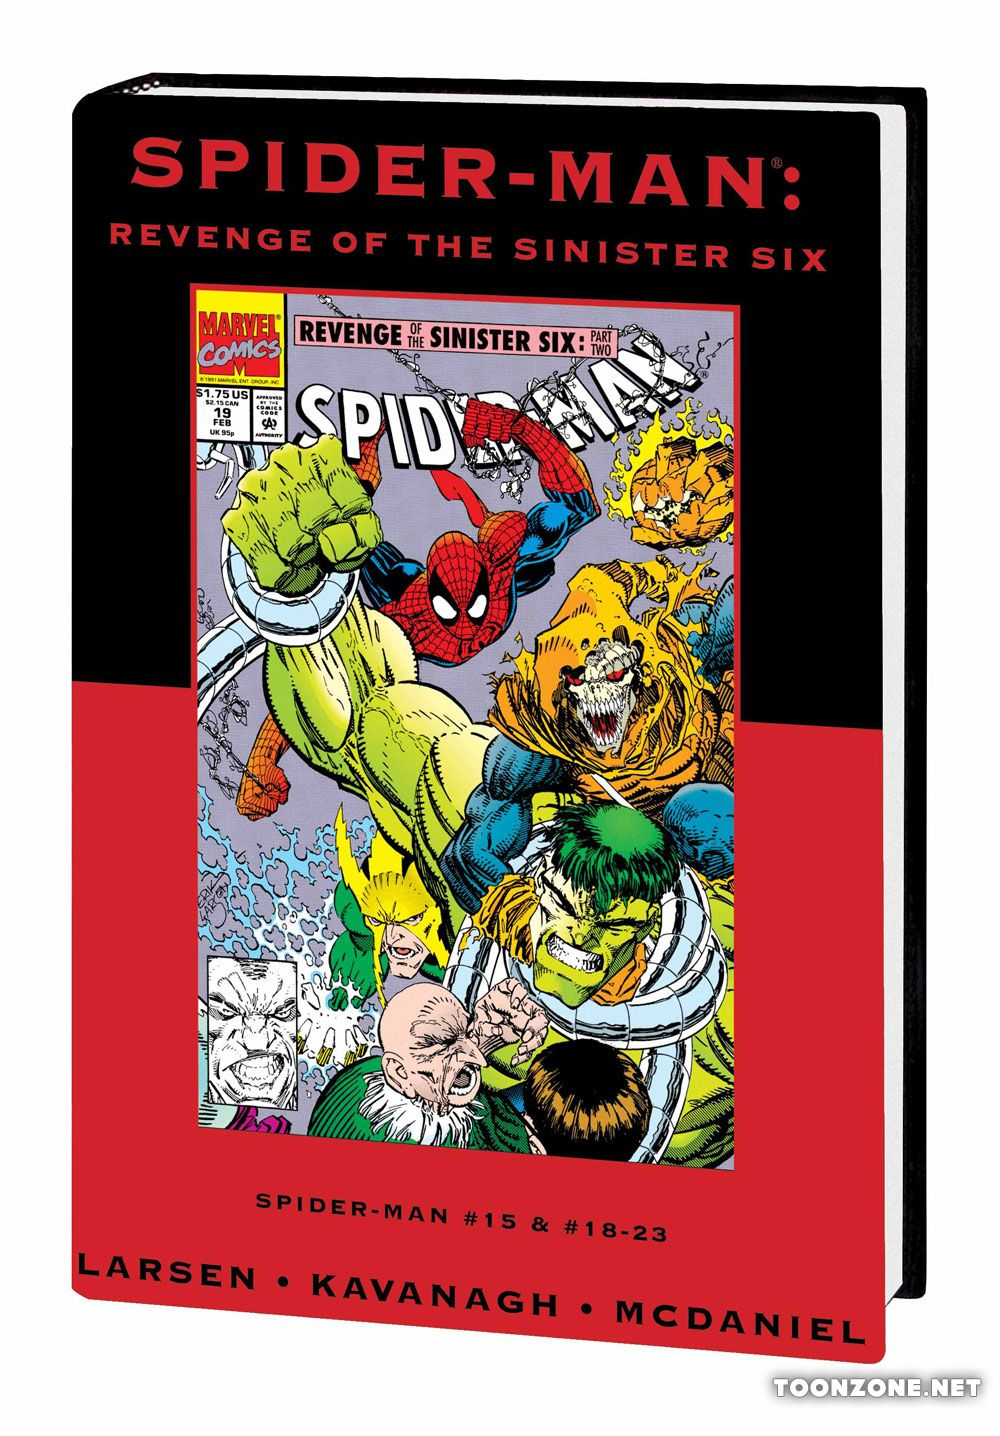 SPIDER-MAN: REVENGE OF THE SINISTER SIX PREMIERE HC — VARIANT EDITION VOL. 103 (DM ONLY)